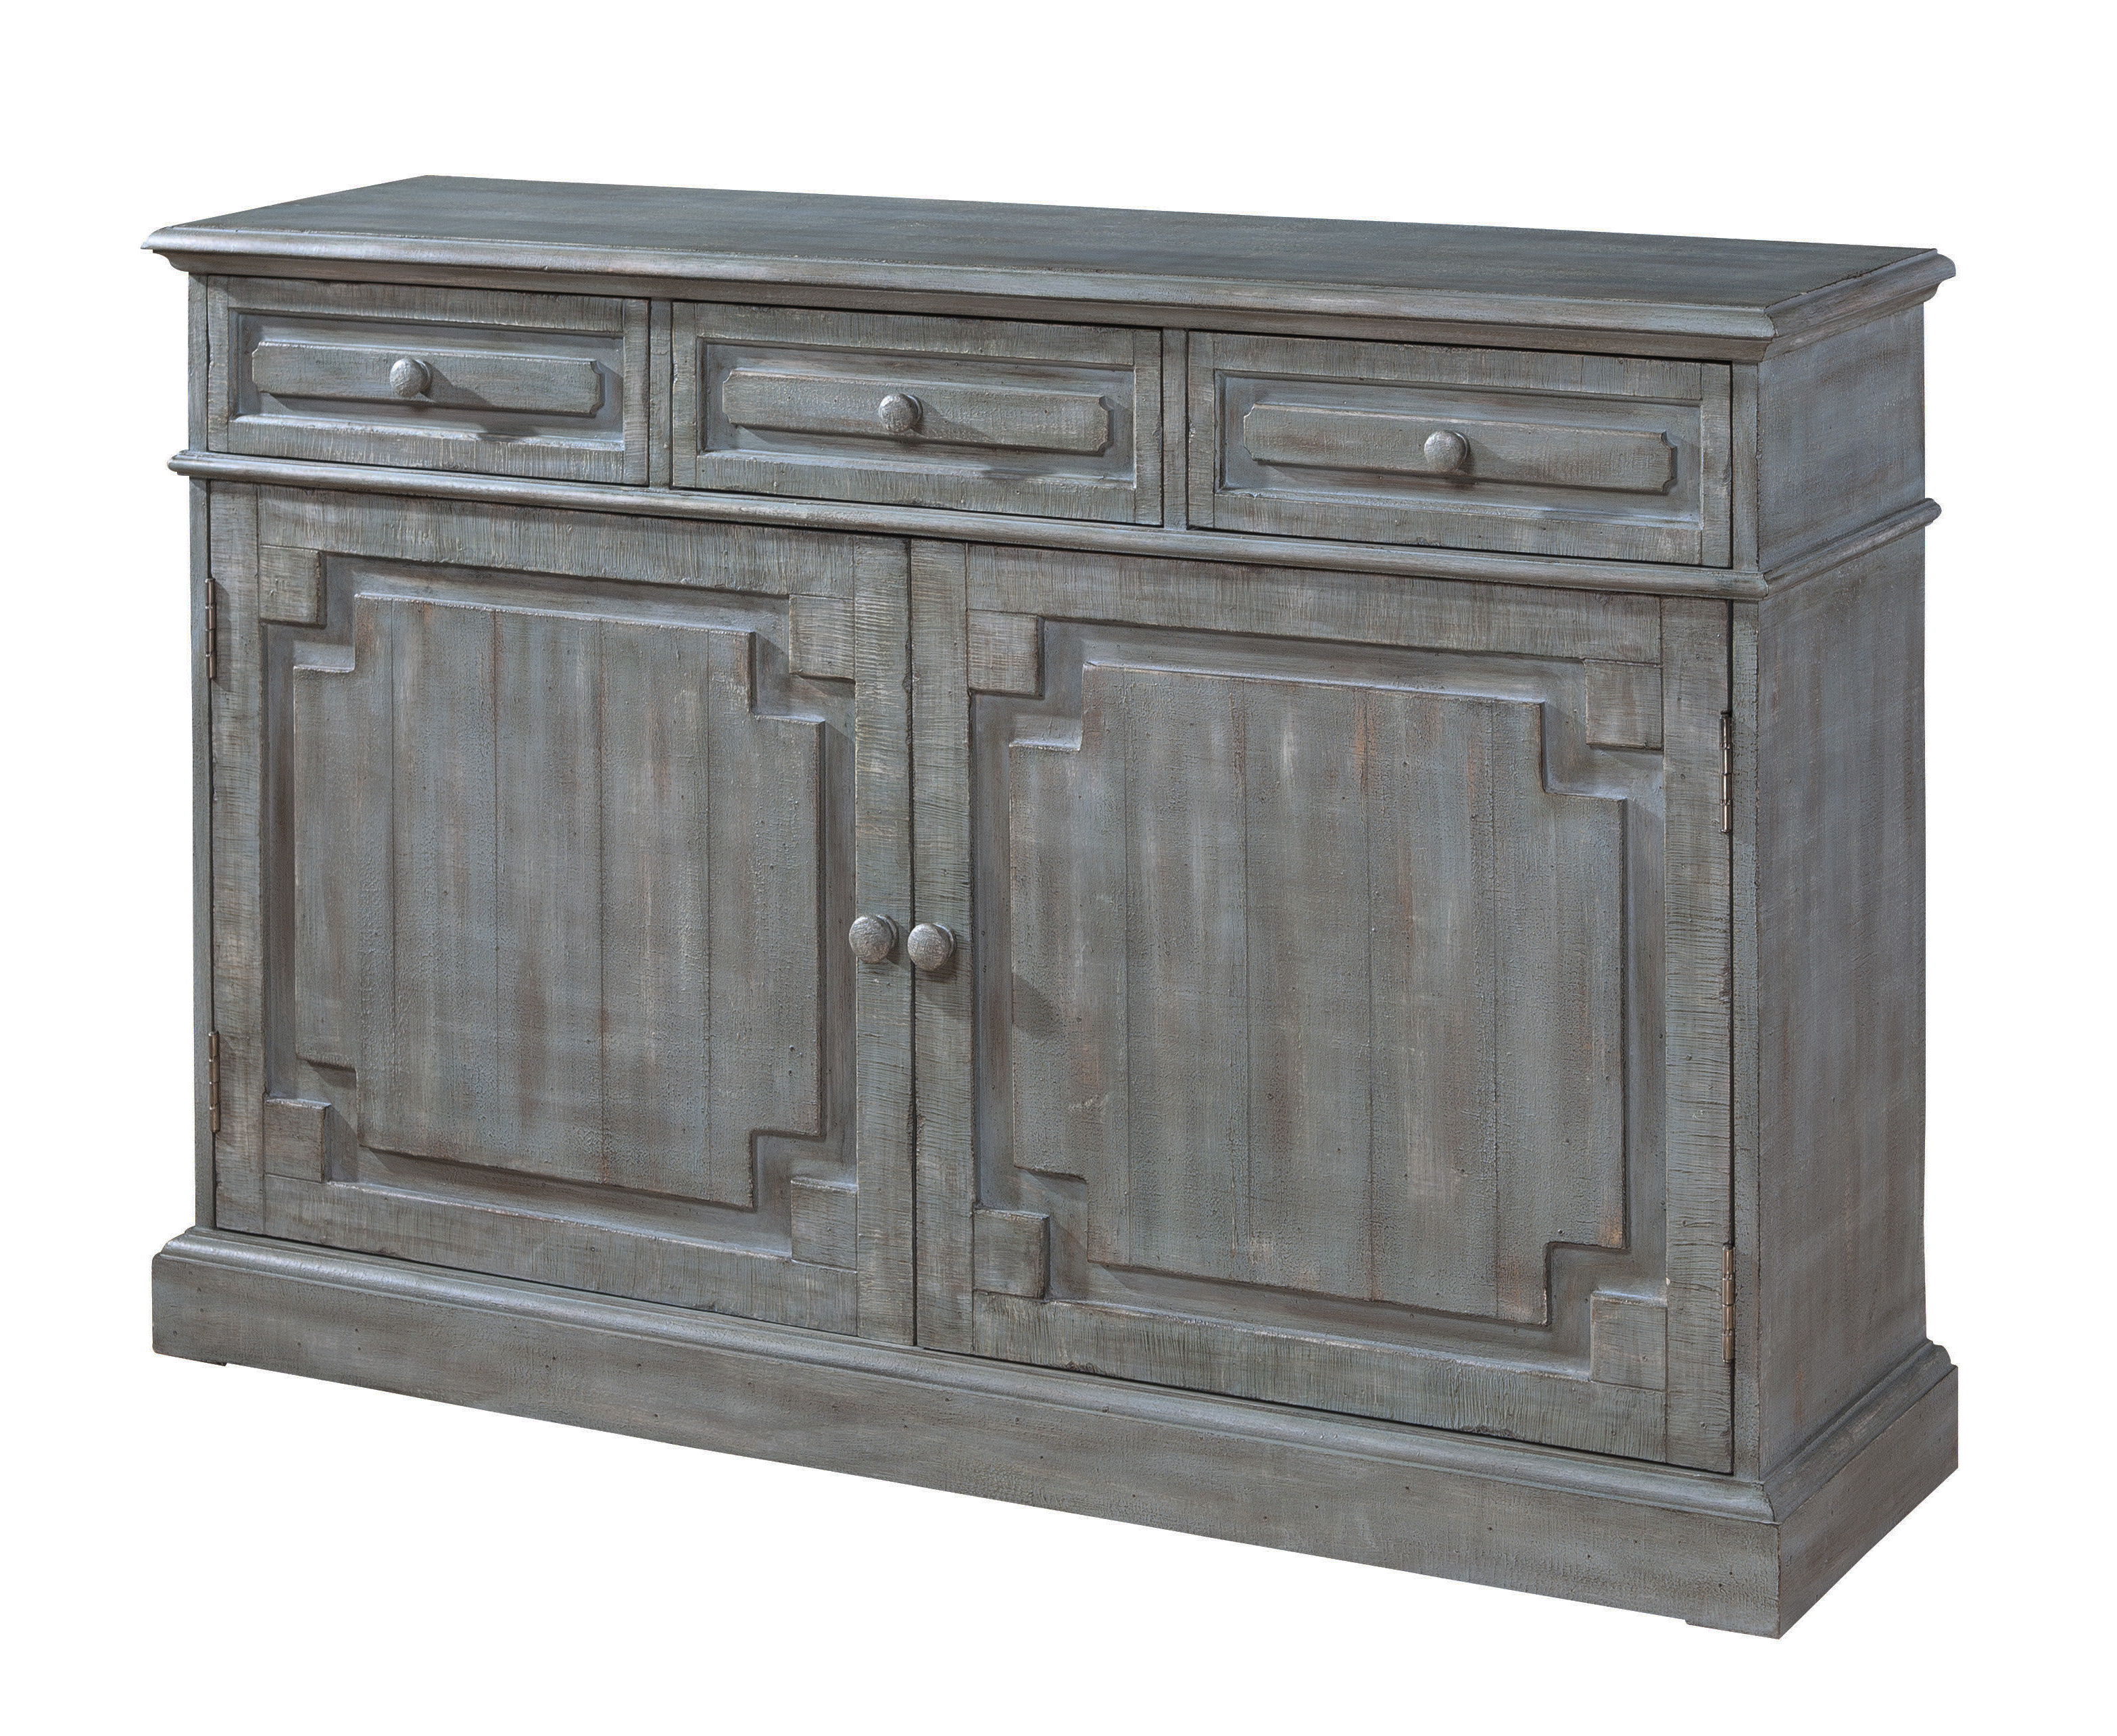 Mistana Adelbert Credenza Pertaining To Most Up To Date Caines Credenzas (View 10 of 20)